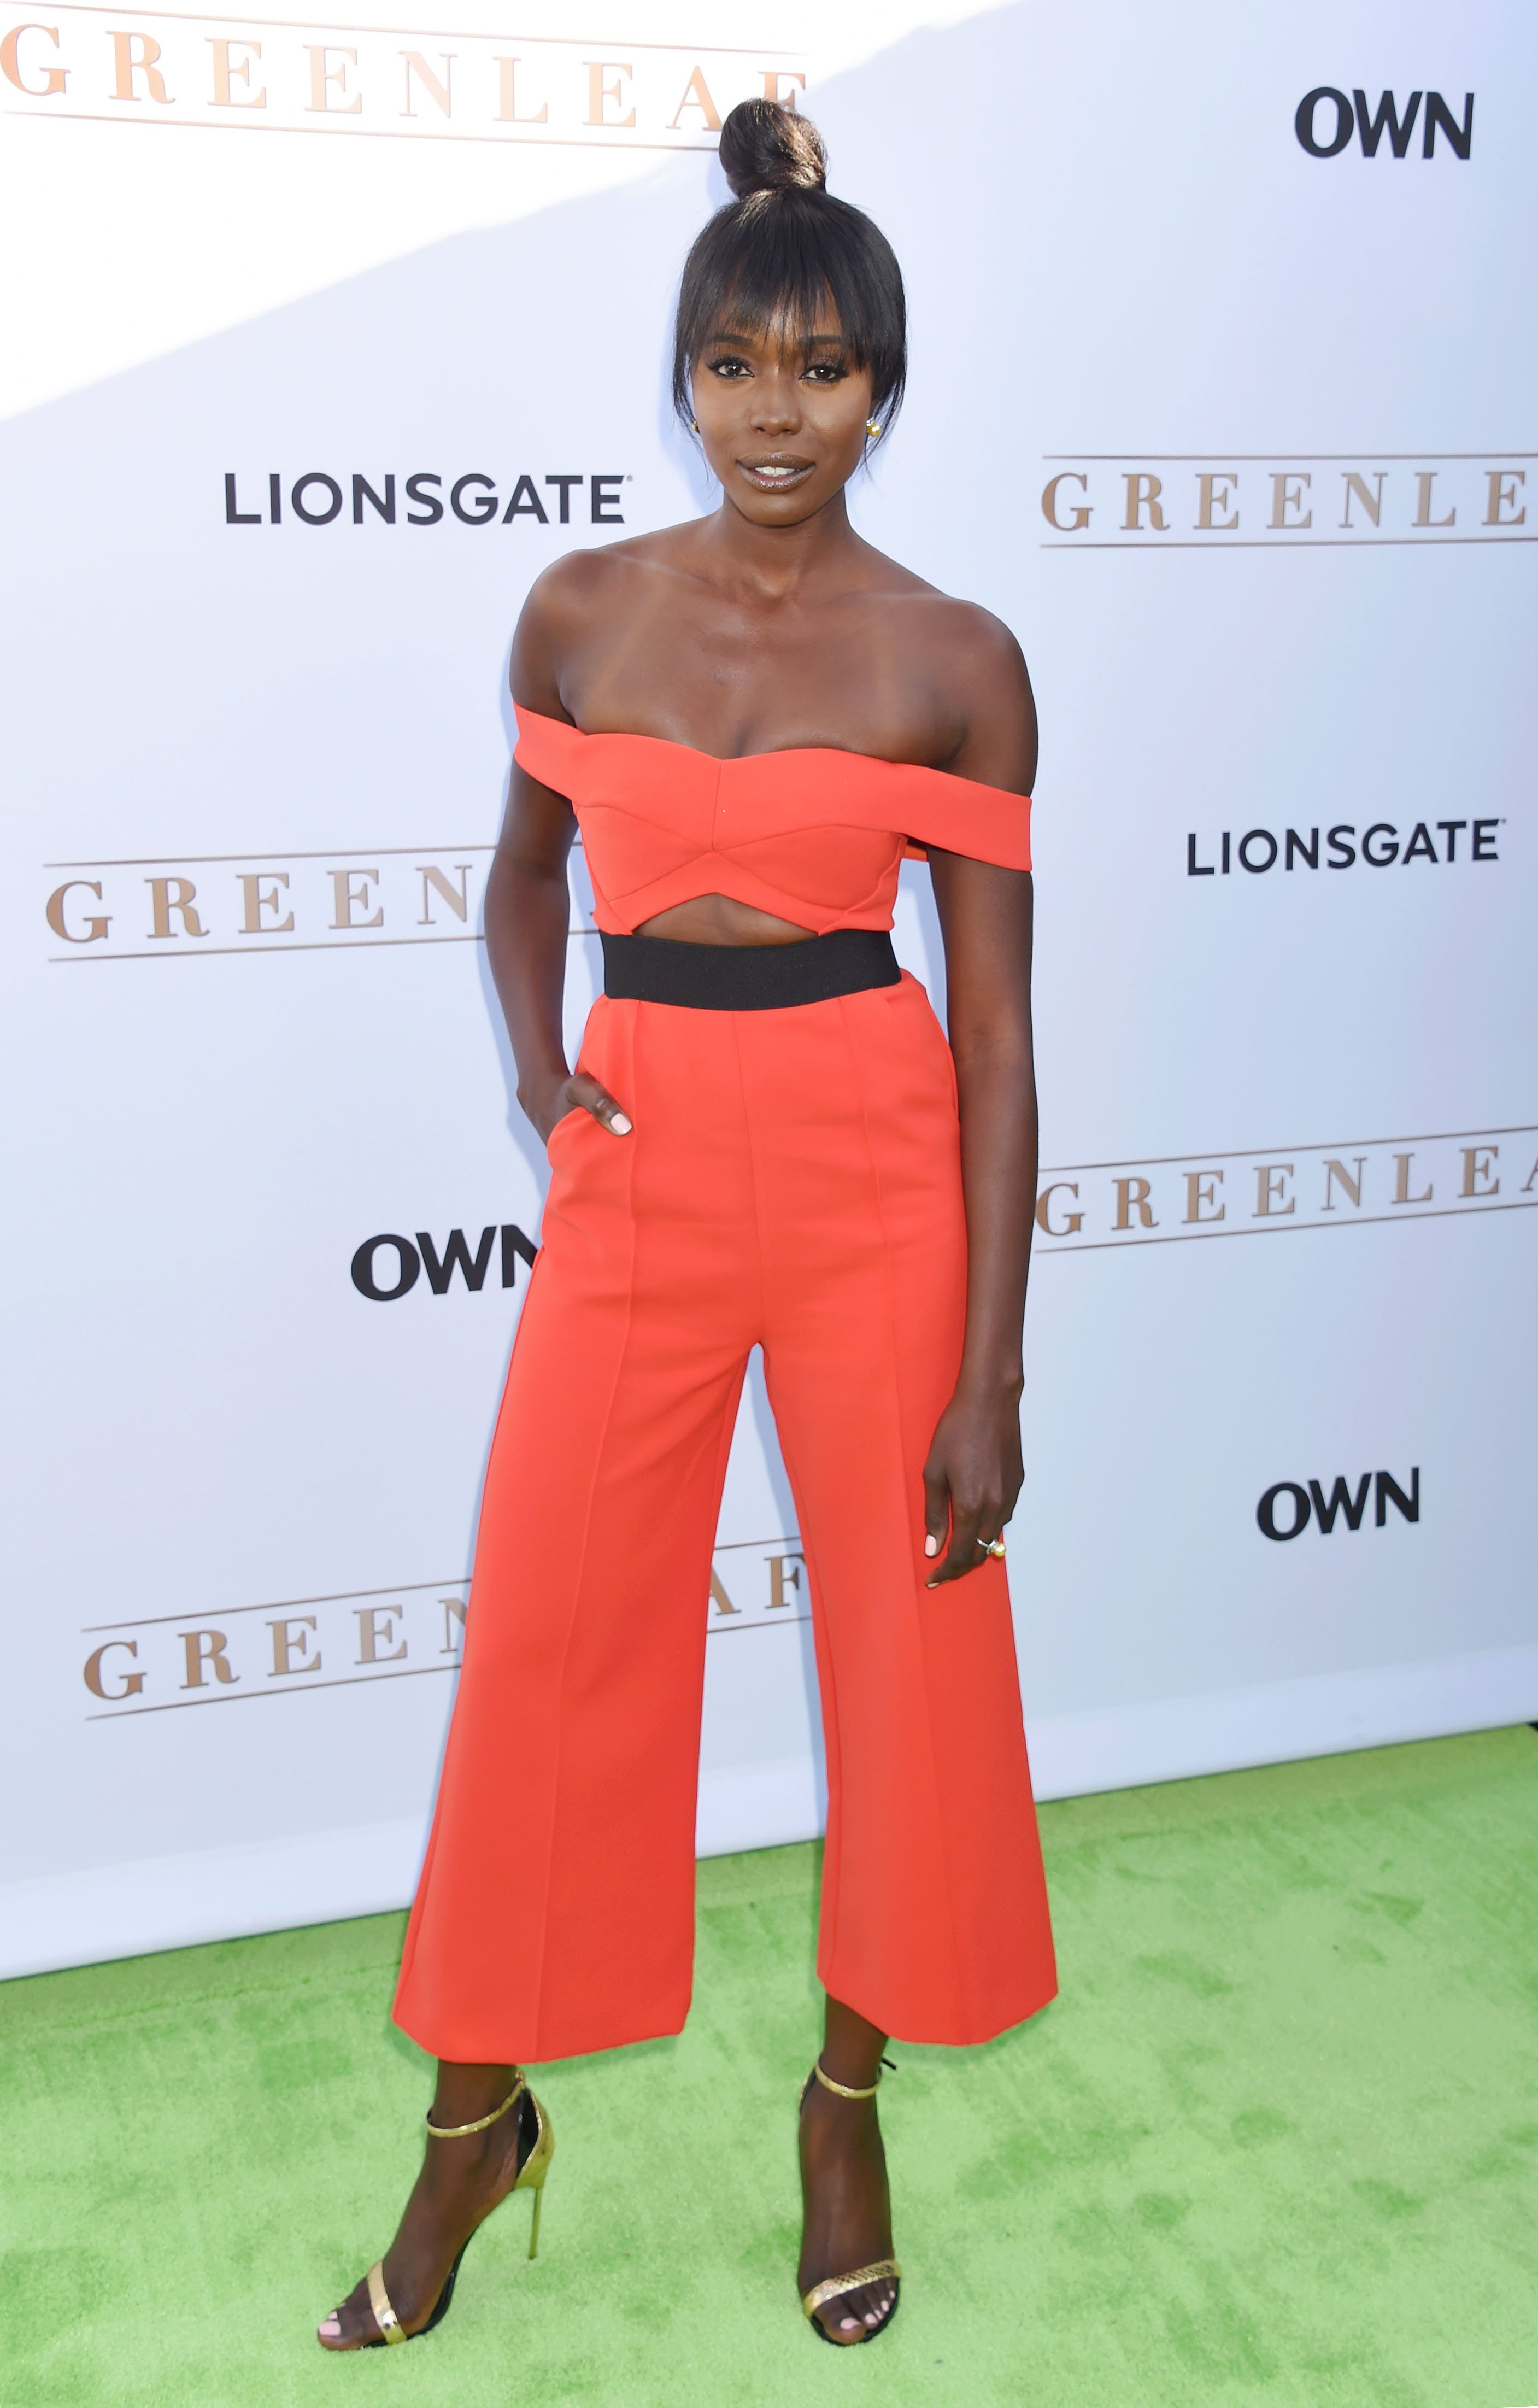 WEST HOLLYWOOD, CA - JUNE 15: Actress Anna Diop arrives at the premiere of OWN's 'Greenleaf' at The Lot on June 15, 2016 in West Hollywood, California., Image: 292181072, License: Rights-managed, Restrictions: , Model Release: no, Credit line: Profimedia, Capital pictures